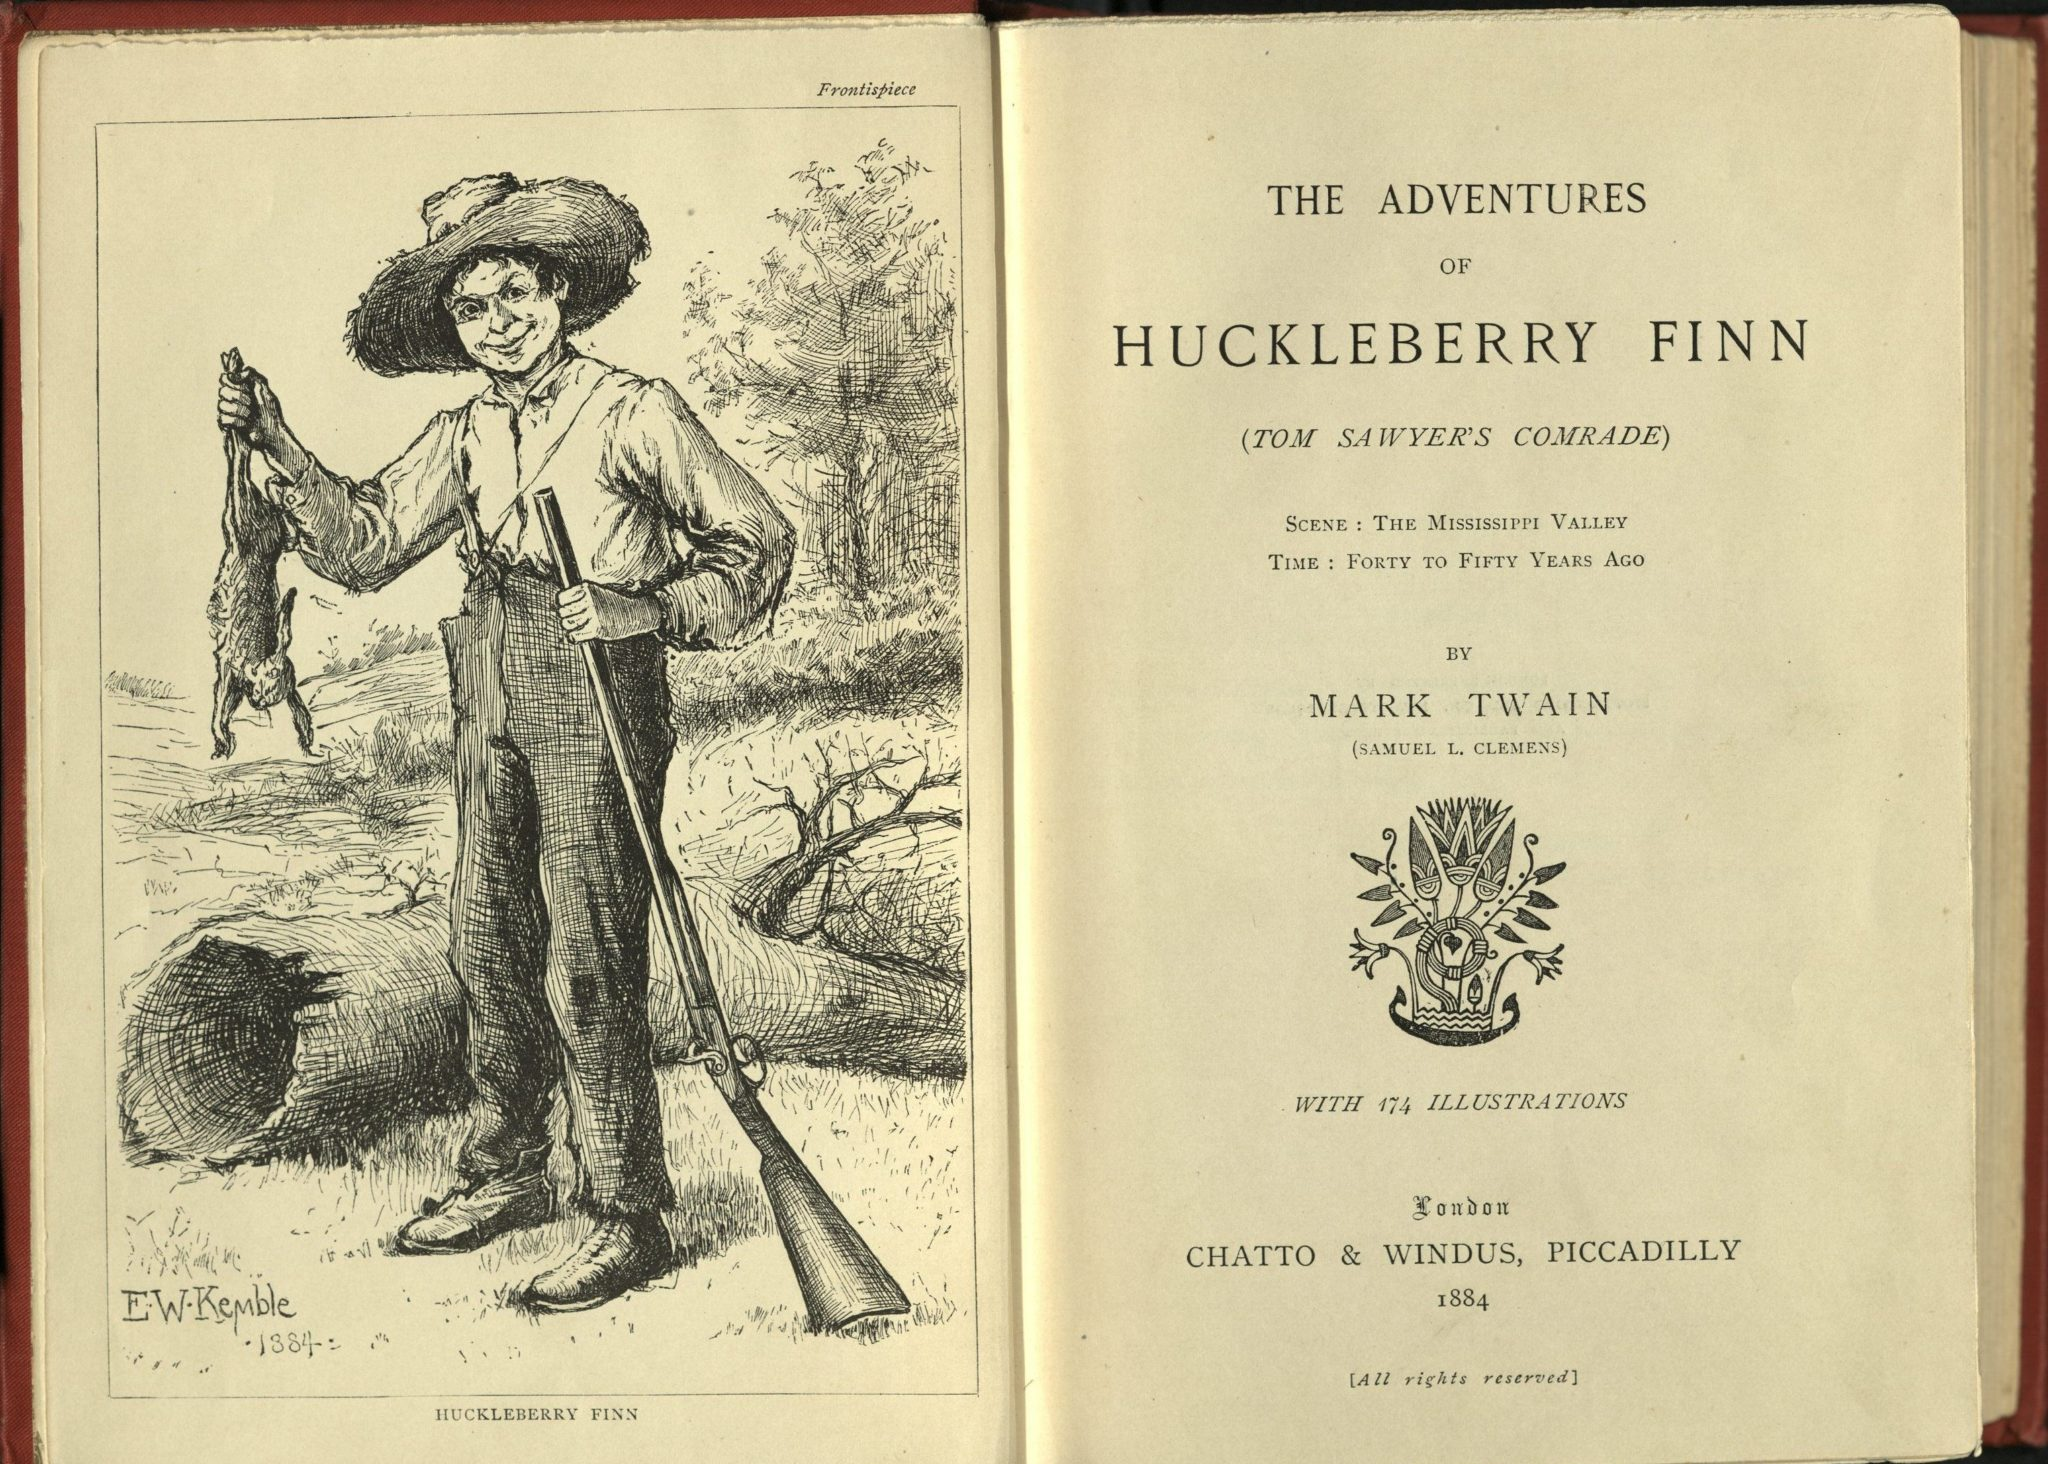 huck finn and racism essay Huck finn: racism essaysthe adventures of huckleberry finn is not a racist novel , nor is mark twain a racist author the novel was a satire on slavery and.